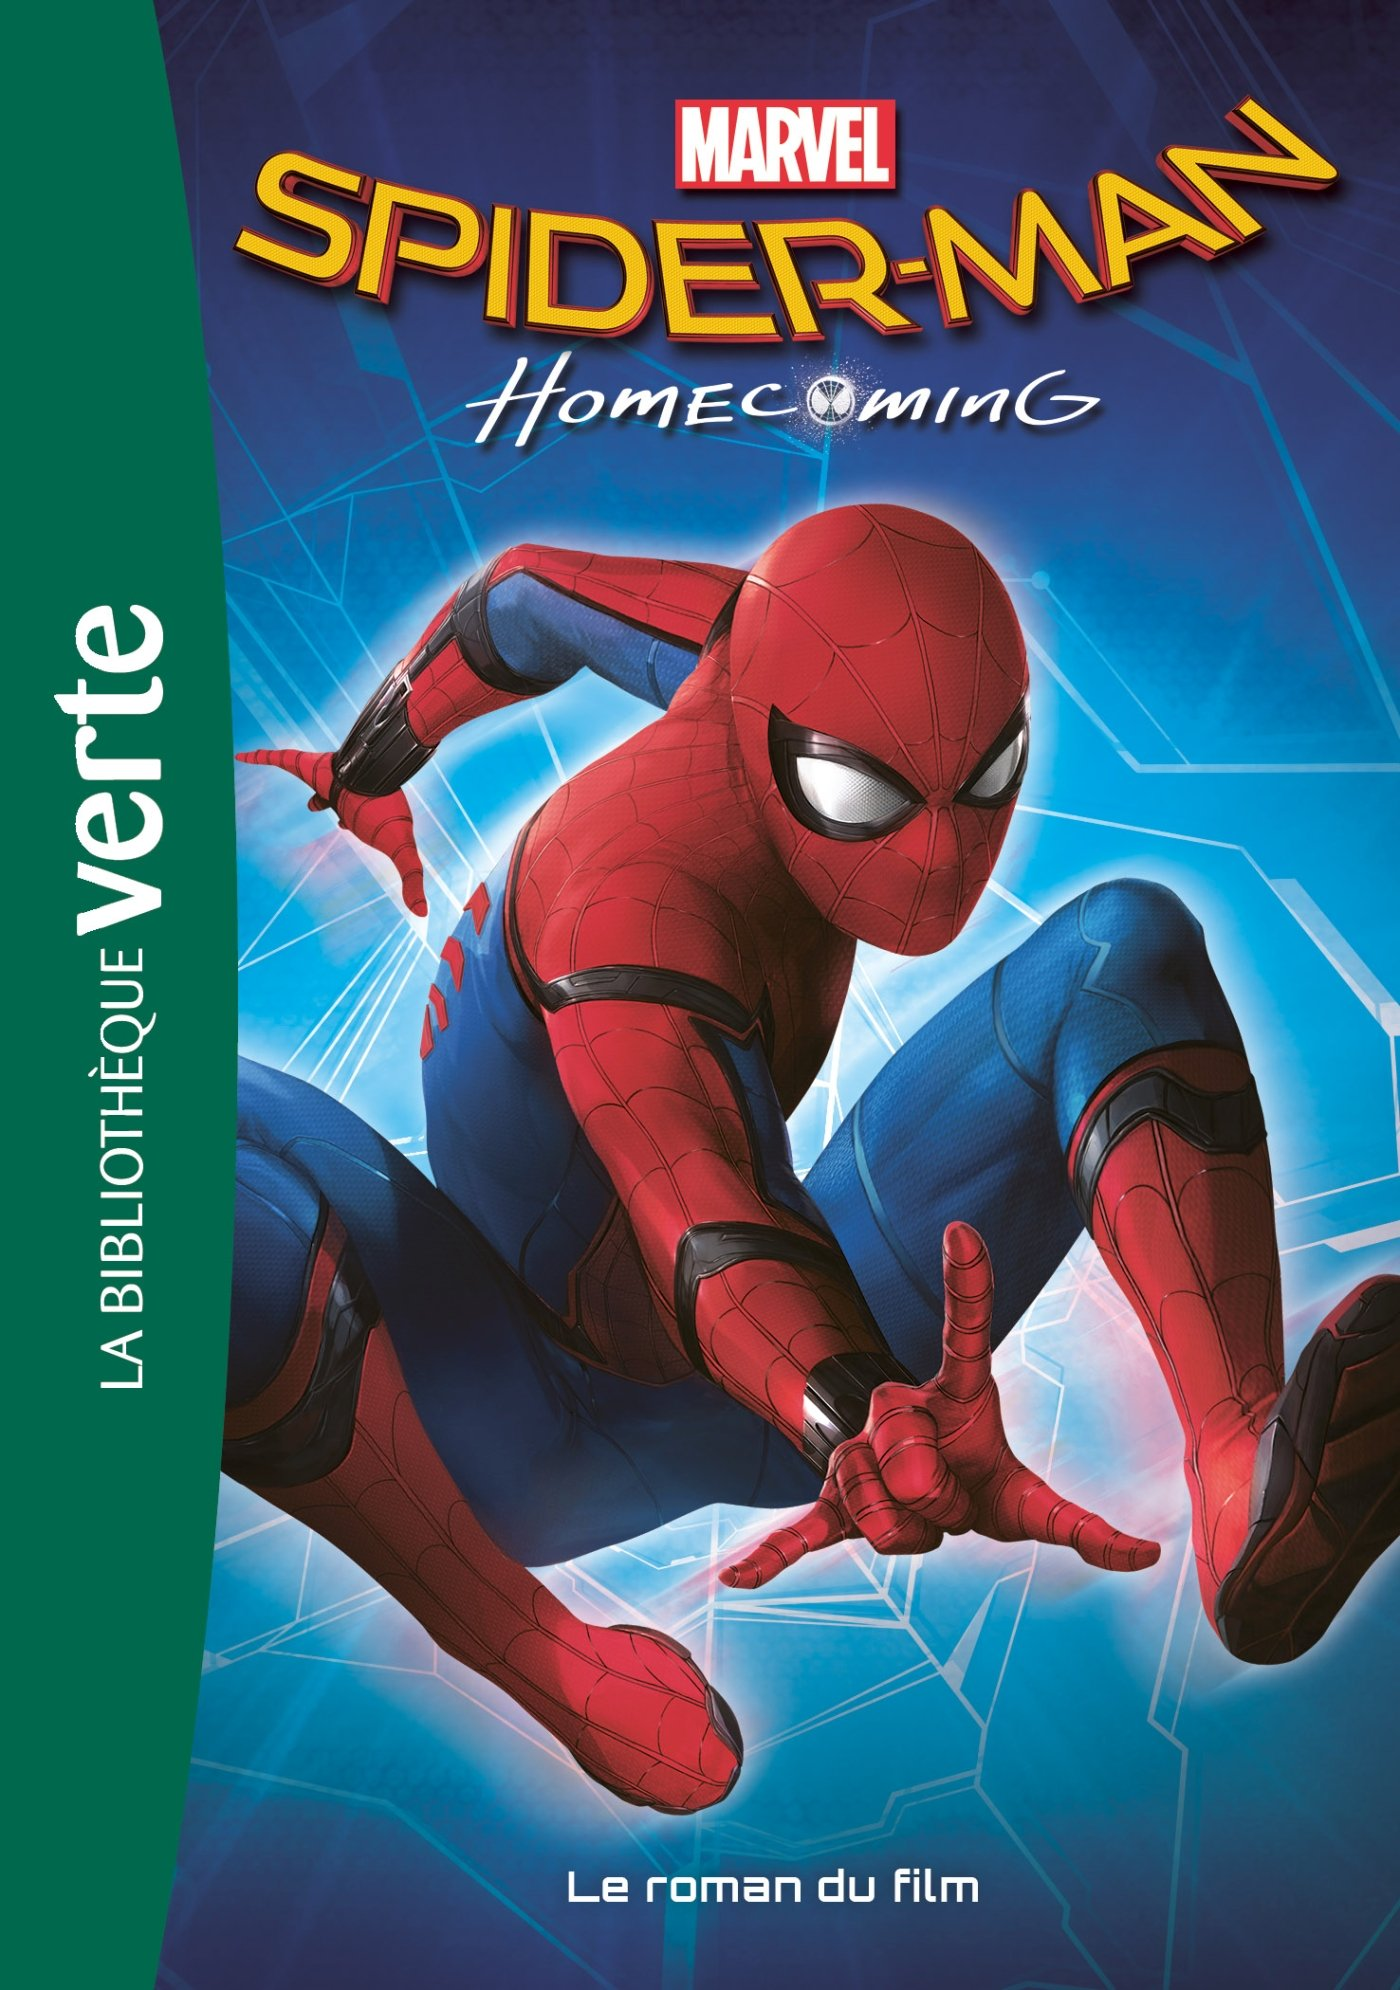 Spiderman Poster New Film 2017 Marvel HOMECOMING Movie FREE P+P CHOOSE YOUR SIZE